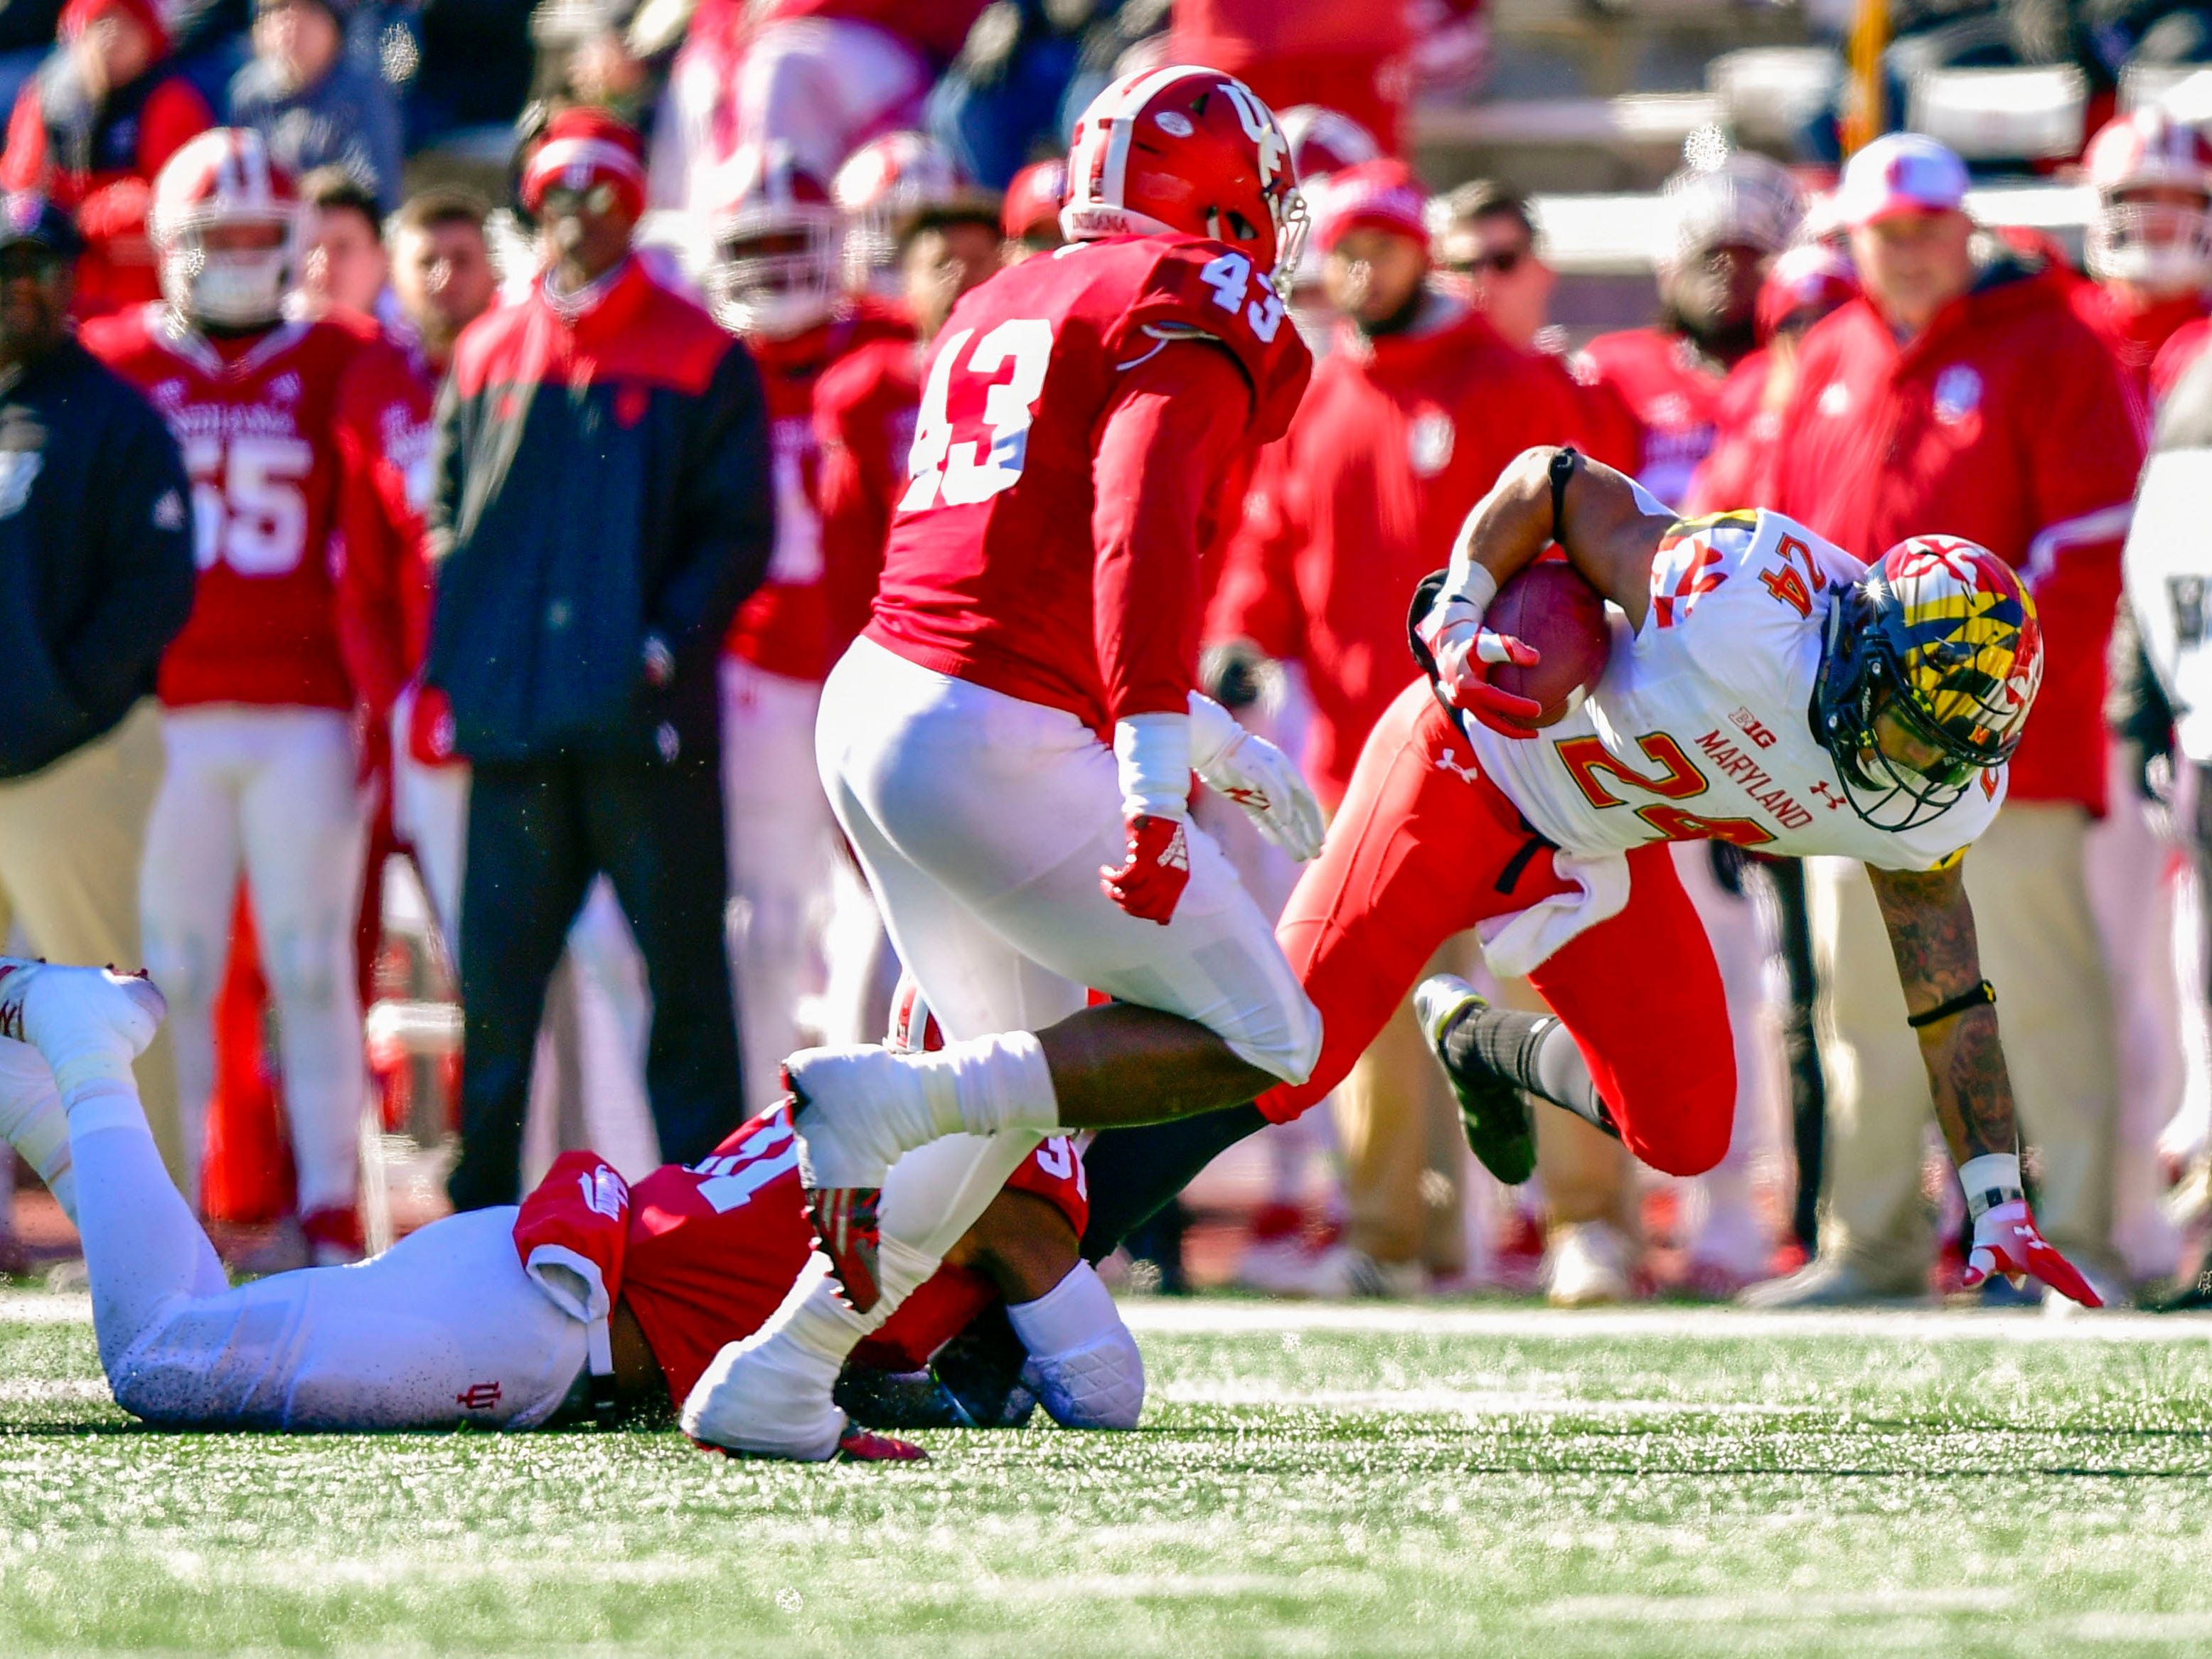 Maryland Terrapins running back Ty Johnson (24) is tackled by Indiana Hoosiers defensive back Bryant Fitzgerald (31) during the fist half of the the game at Memorial Stadium.